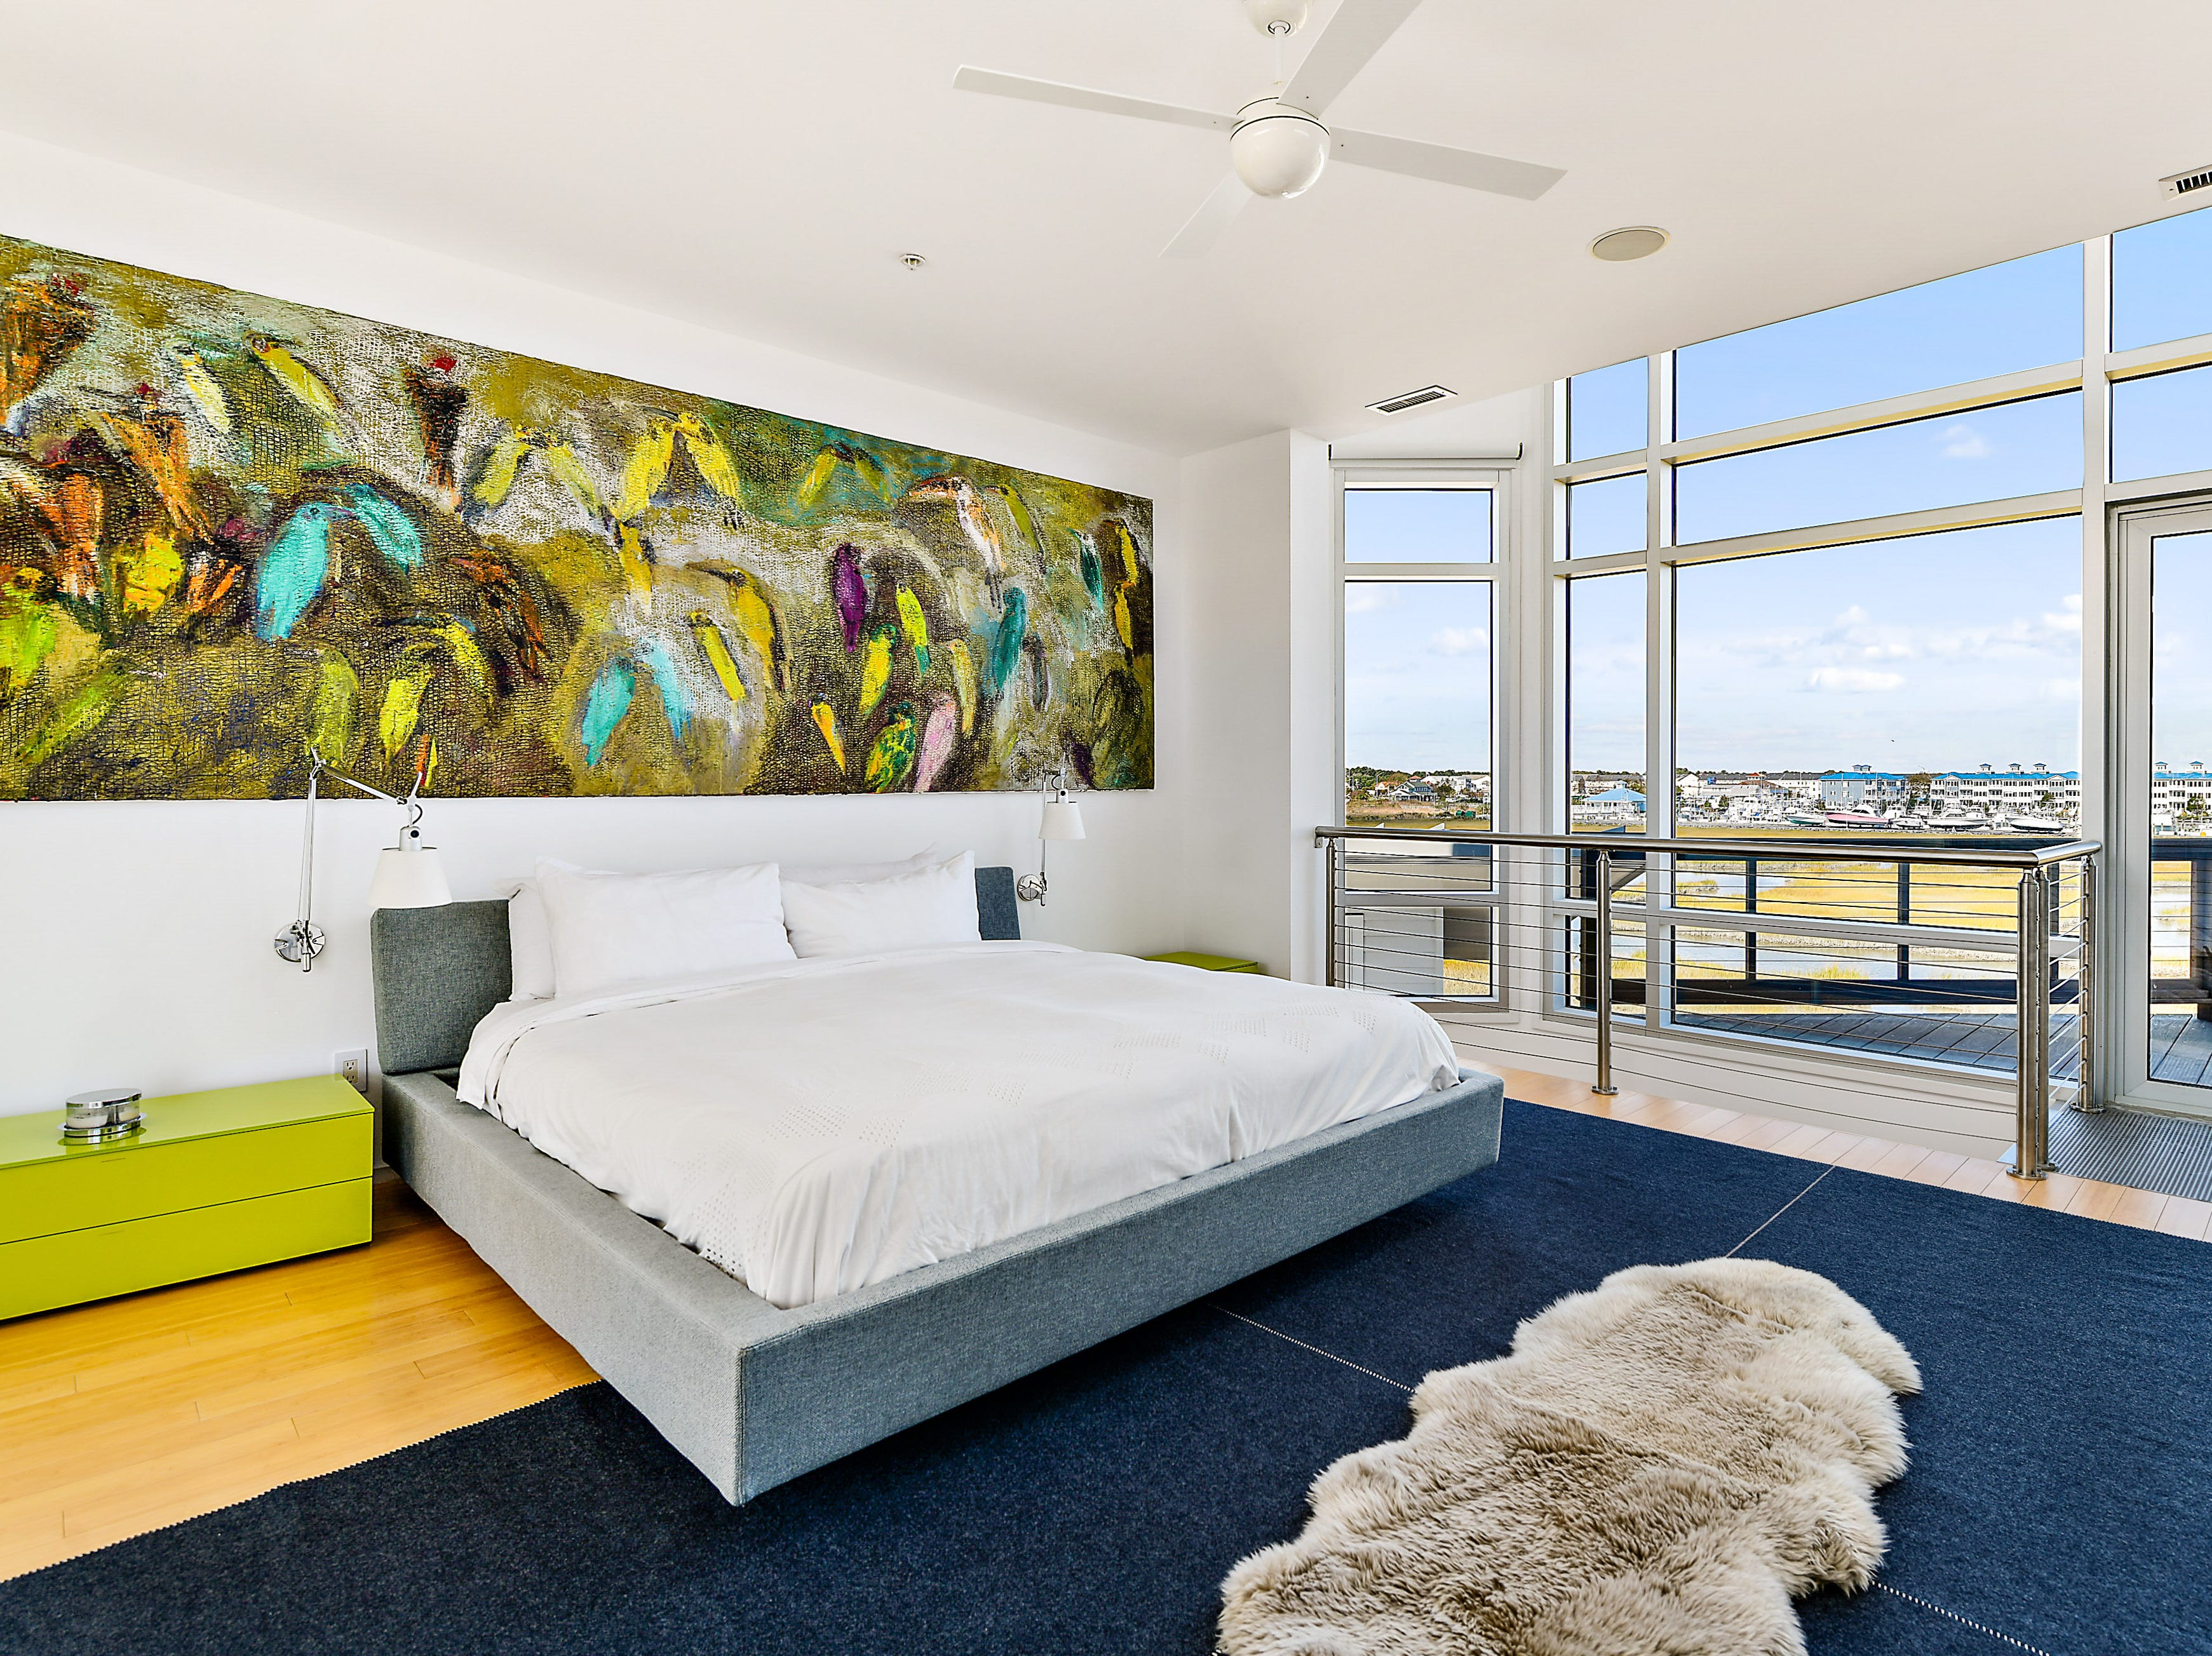 A bedroom in a five-bedroom home on Old Bridge Road in Ocean City that is listed for $3.6 million.